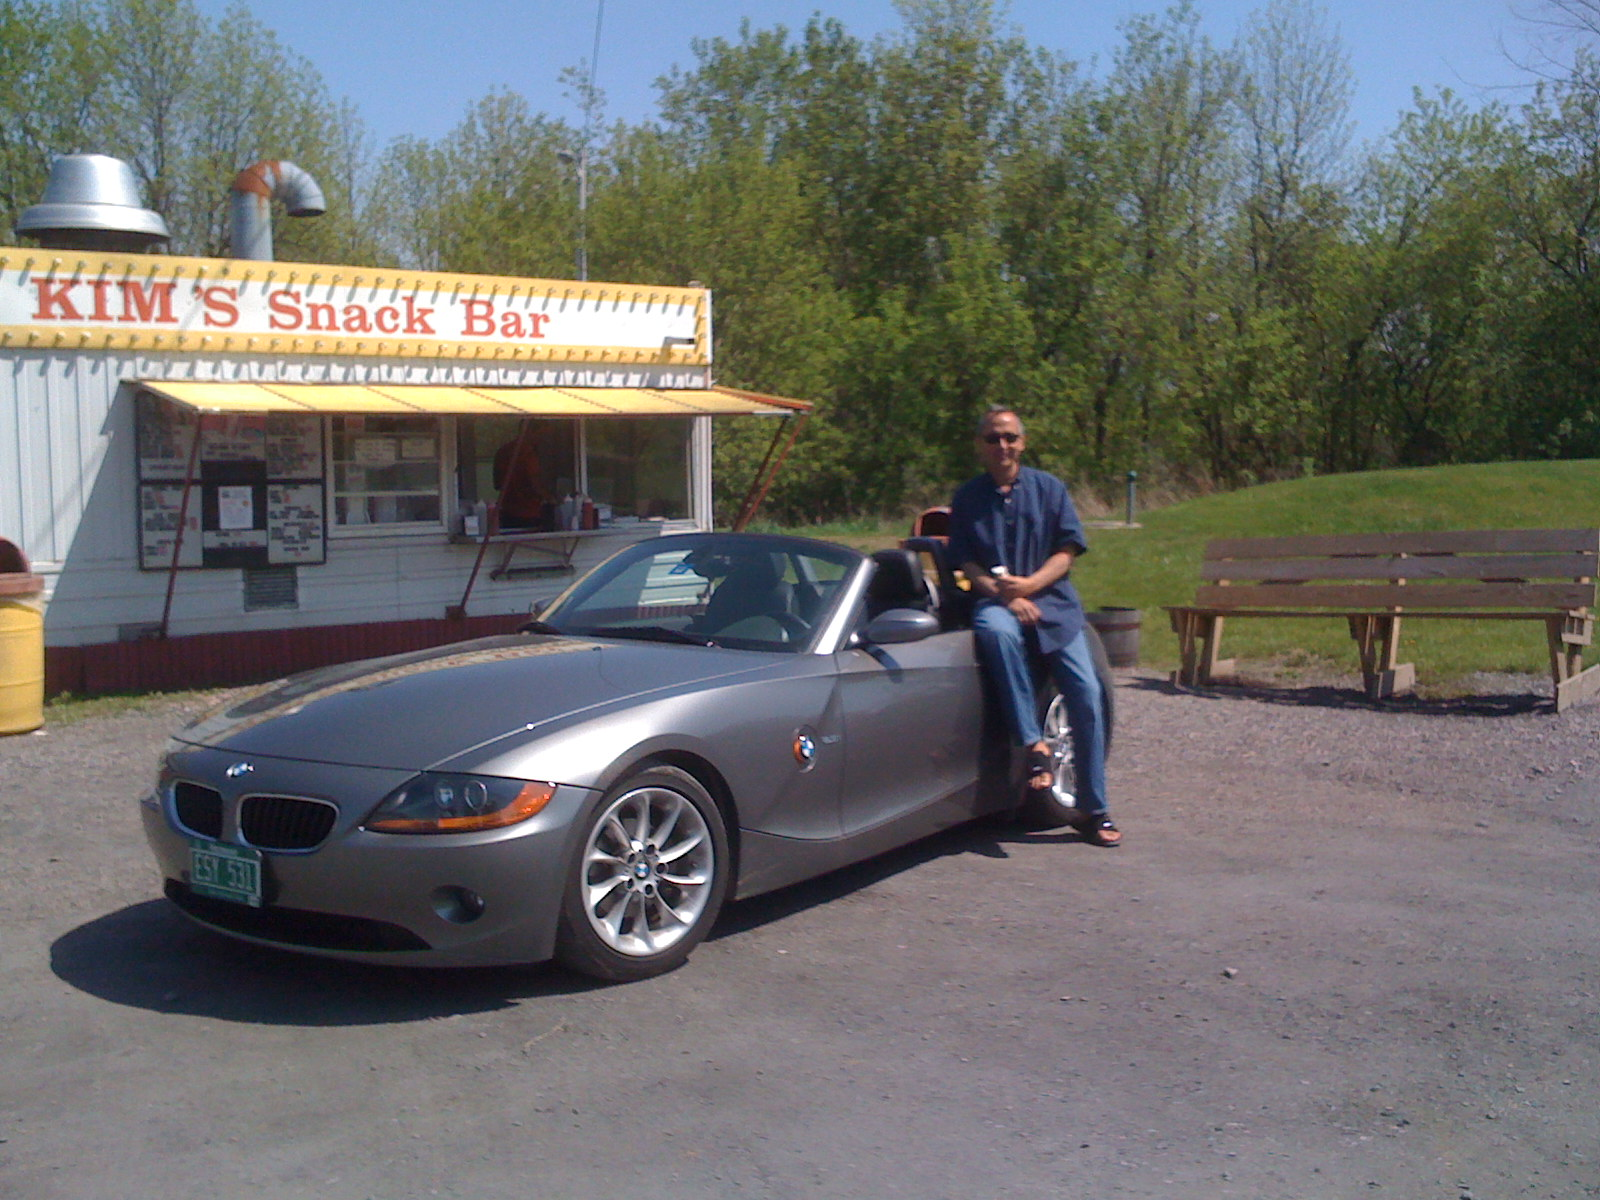 for sale 2003 bmw z4 17 500 terminal cancer. Black Bedroom Furniture Sets. Home Design Ideas